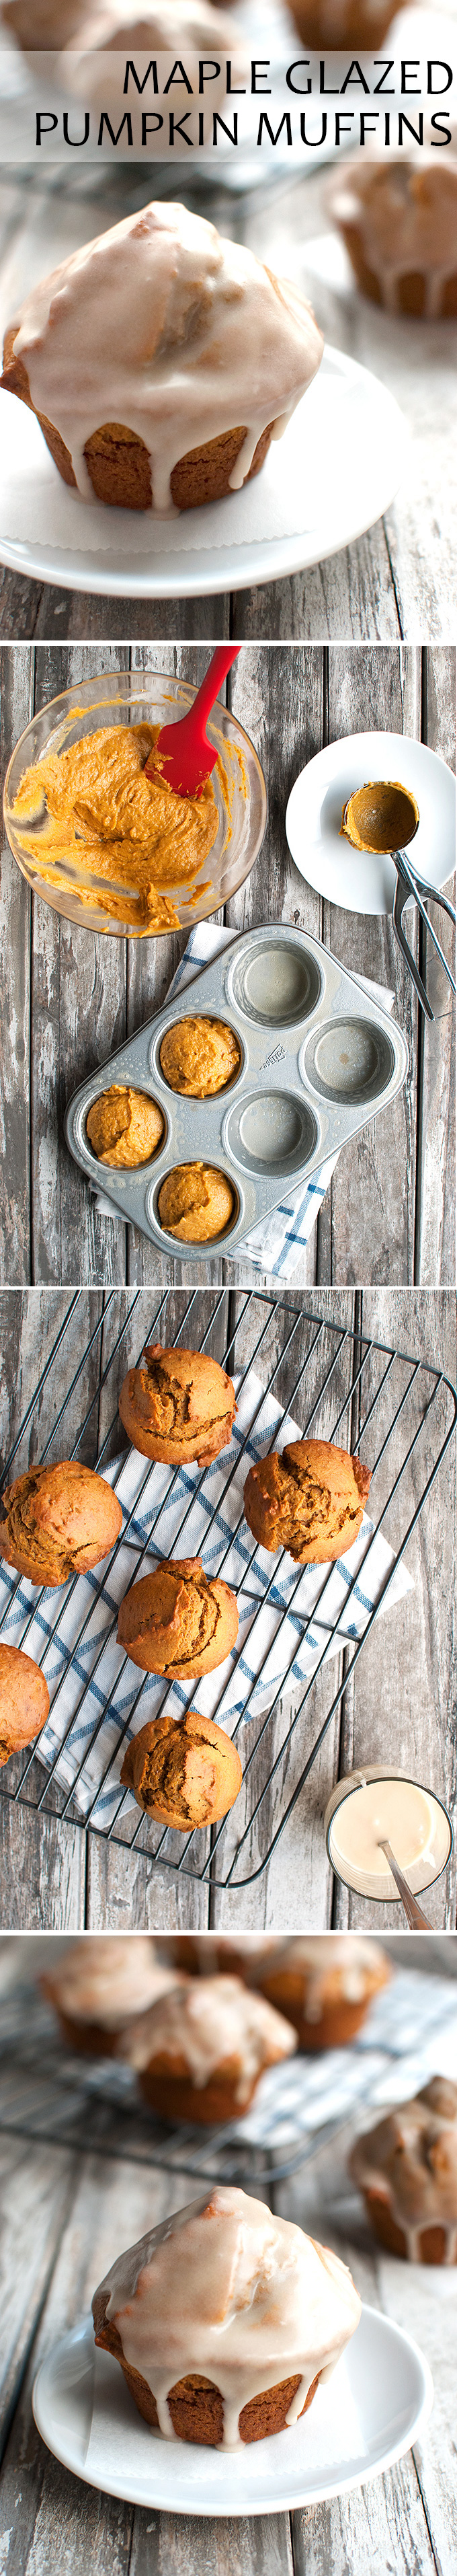 The Tough Cookie | Whole Wheat Pumpkin Muffins with Maple Glaze | thetoughcookie.com